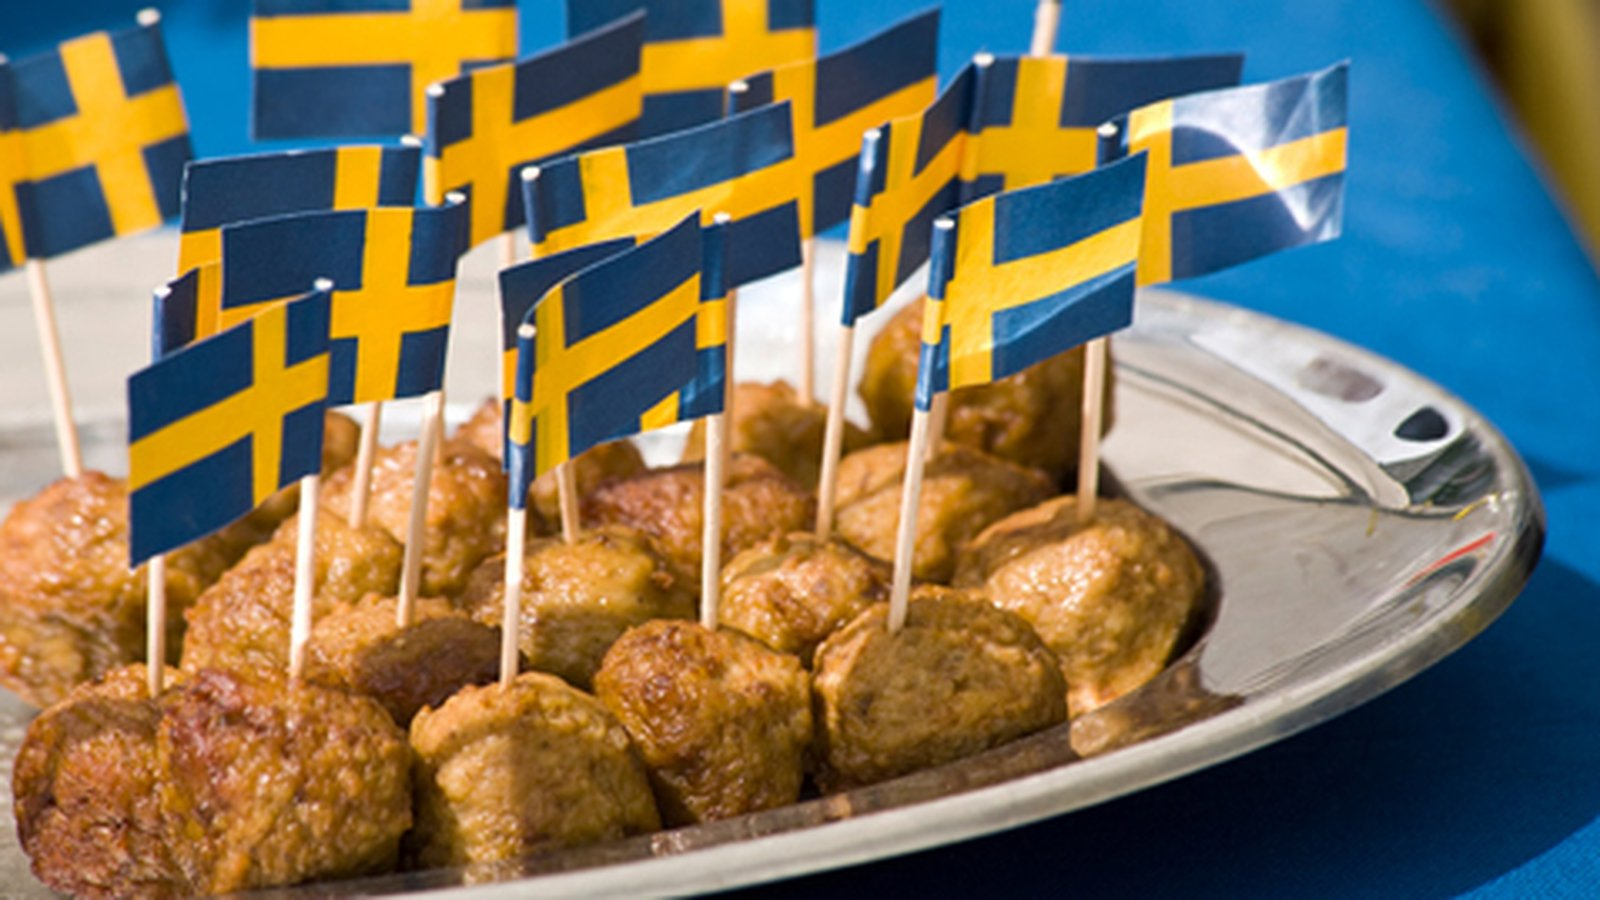 20 Eurovision Party Food Ideas